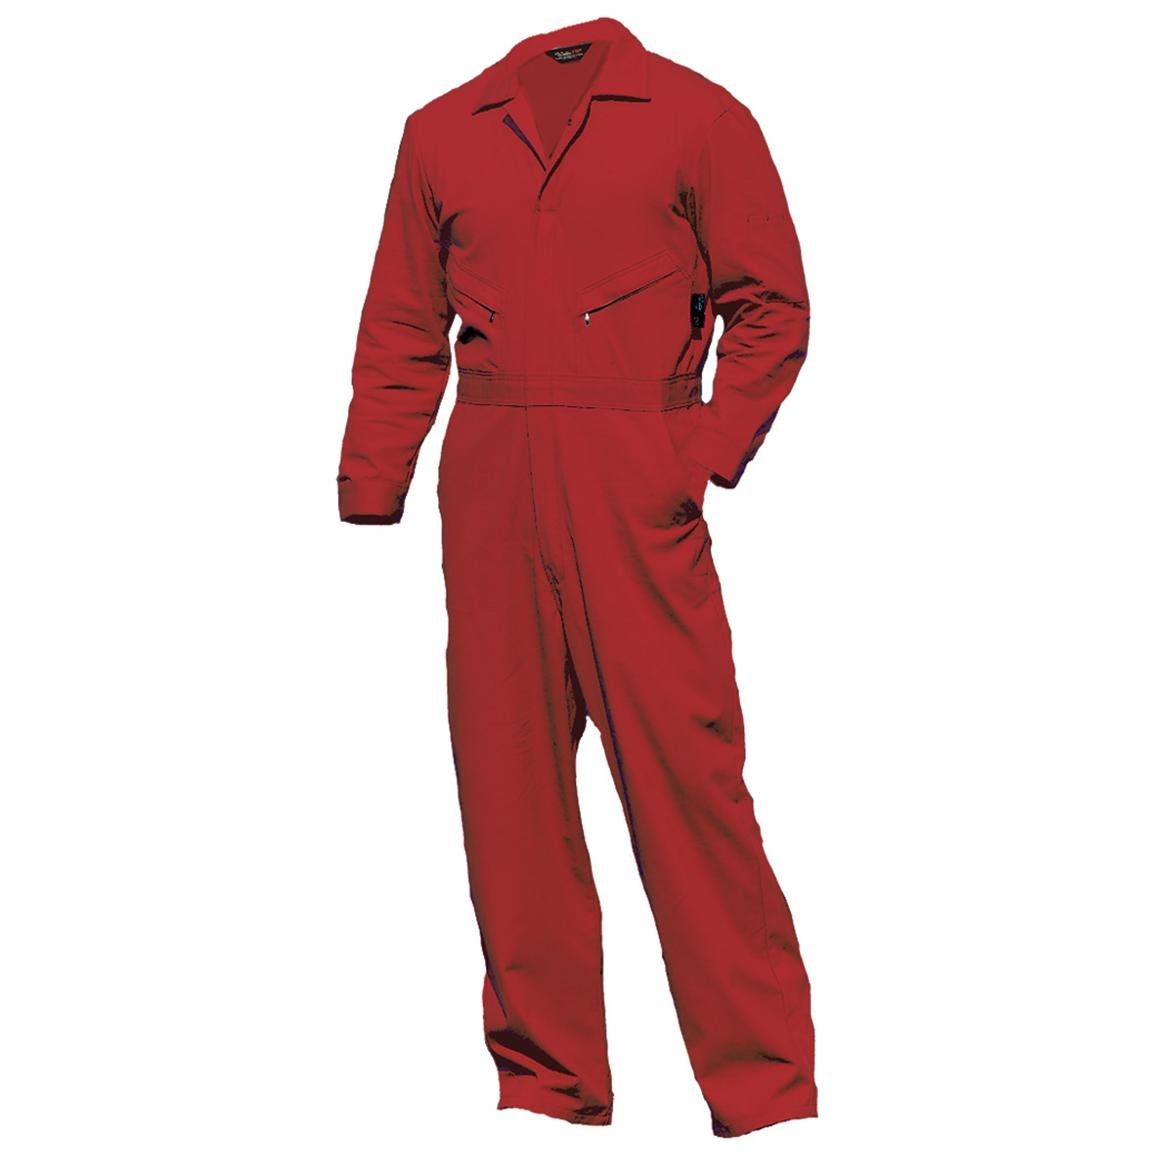 Walls Flame Resistant Industrial Coveralls, Red